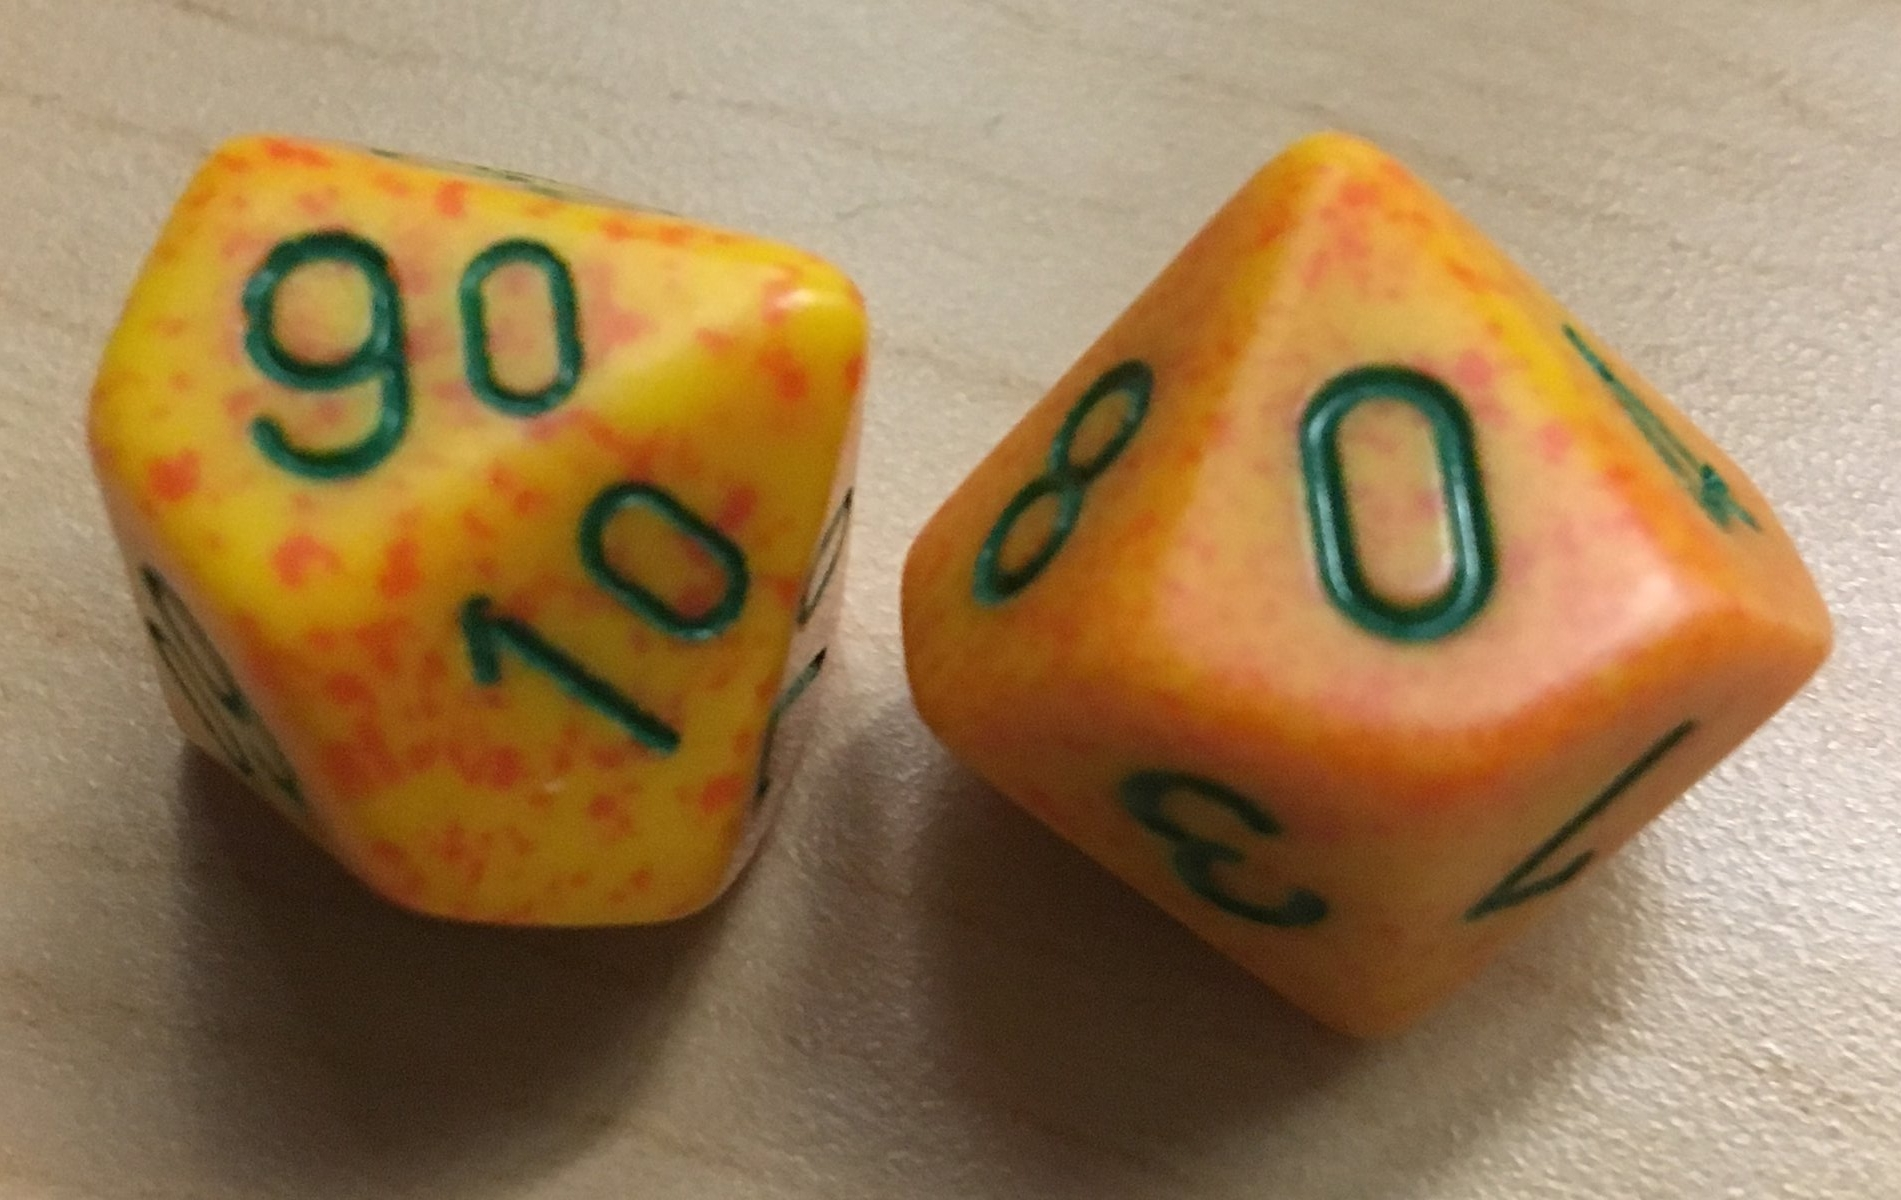 Successful roll for Dark Intent, 20% success rate roll of 80 or better on D10. See above for Dark Intent play rules.